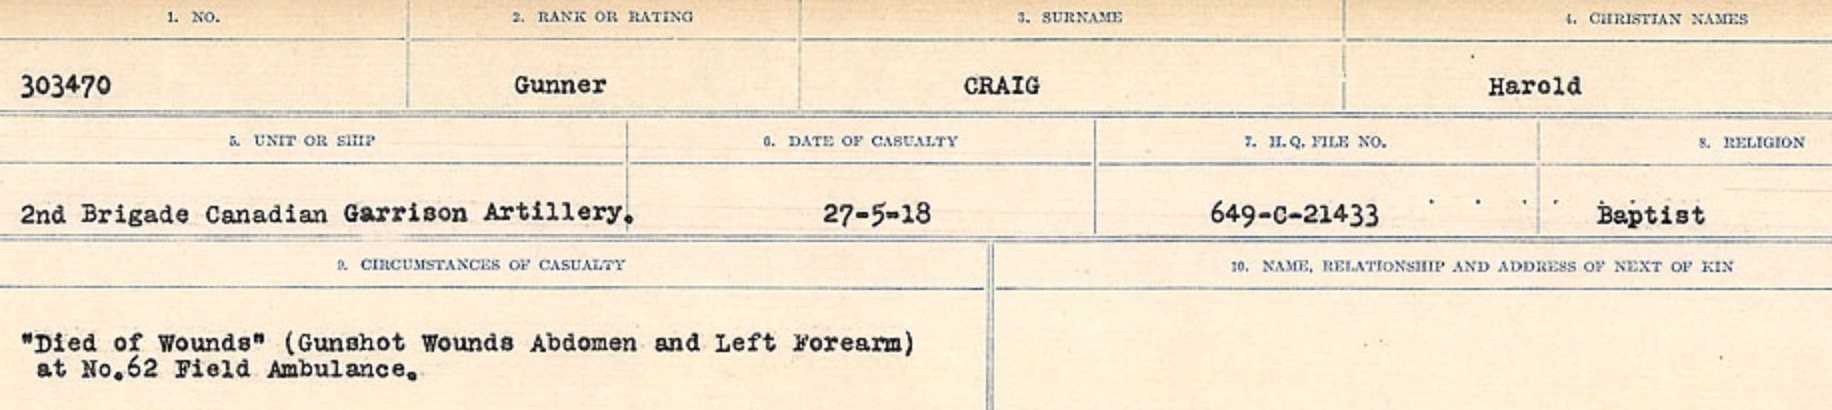 Circumstances of Death Registers– Source: Library and Archives Canada. CIRCUMSTANCES OF DEATH REGISTERS, FIRST WORLD WAR Surnames: CRABB TO CROSSLAND Microform Sequence 24; Volume Number 31829_B016733. Reference RG150, 1992-93/314, 168. Page 81 of 788.